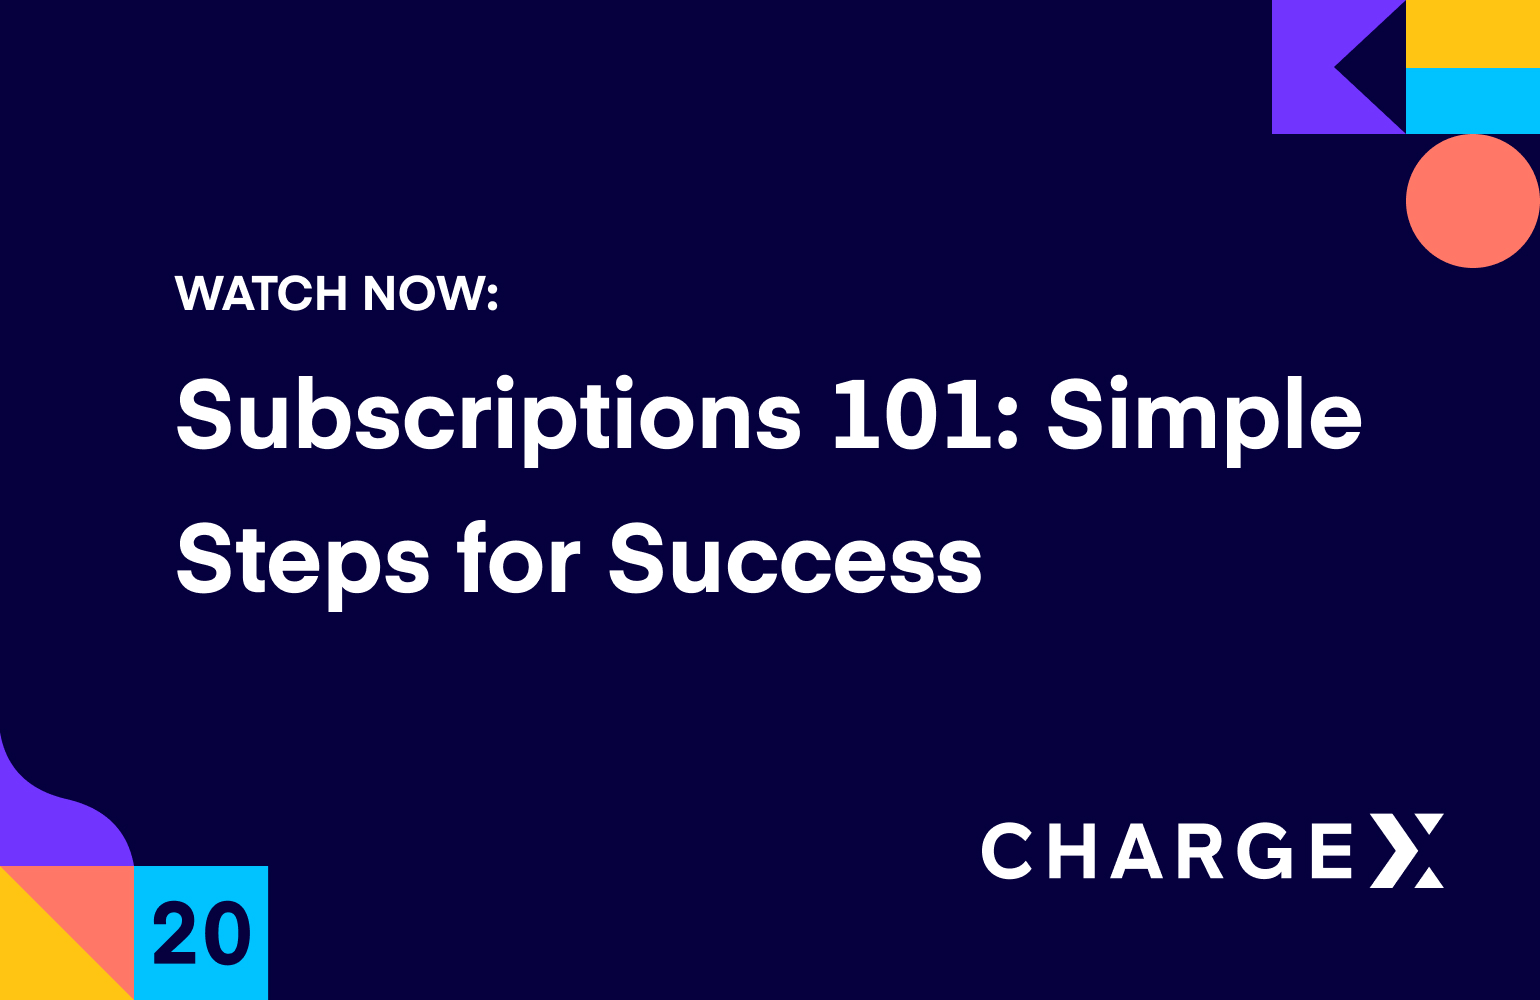 Subscriptions 101: Simple steps for success (ChargeX 2020)